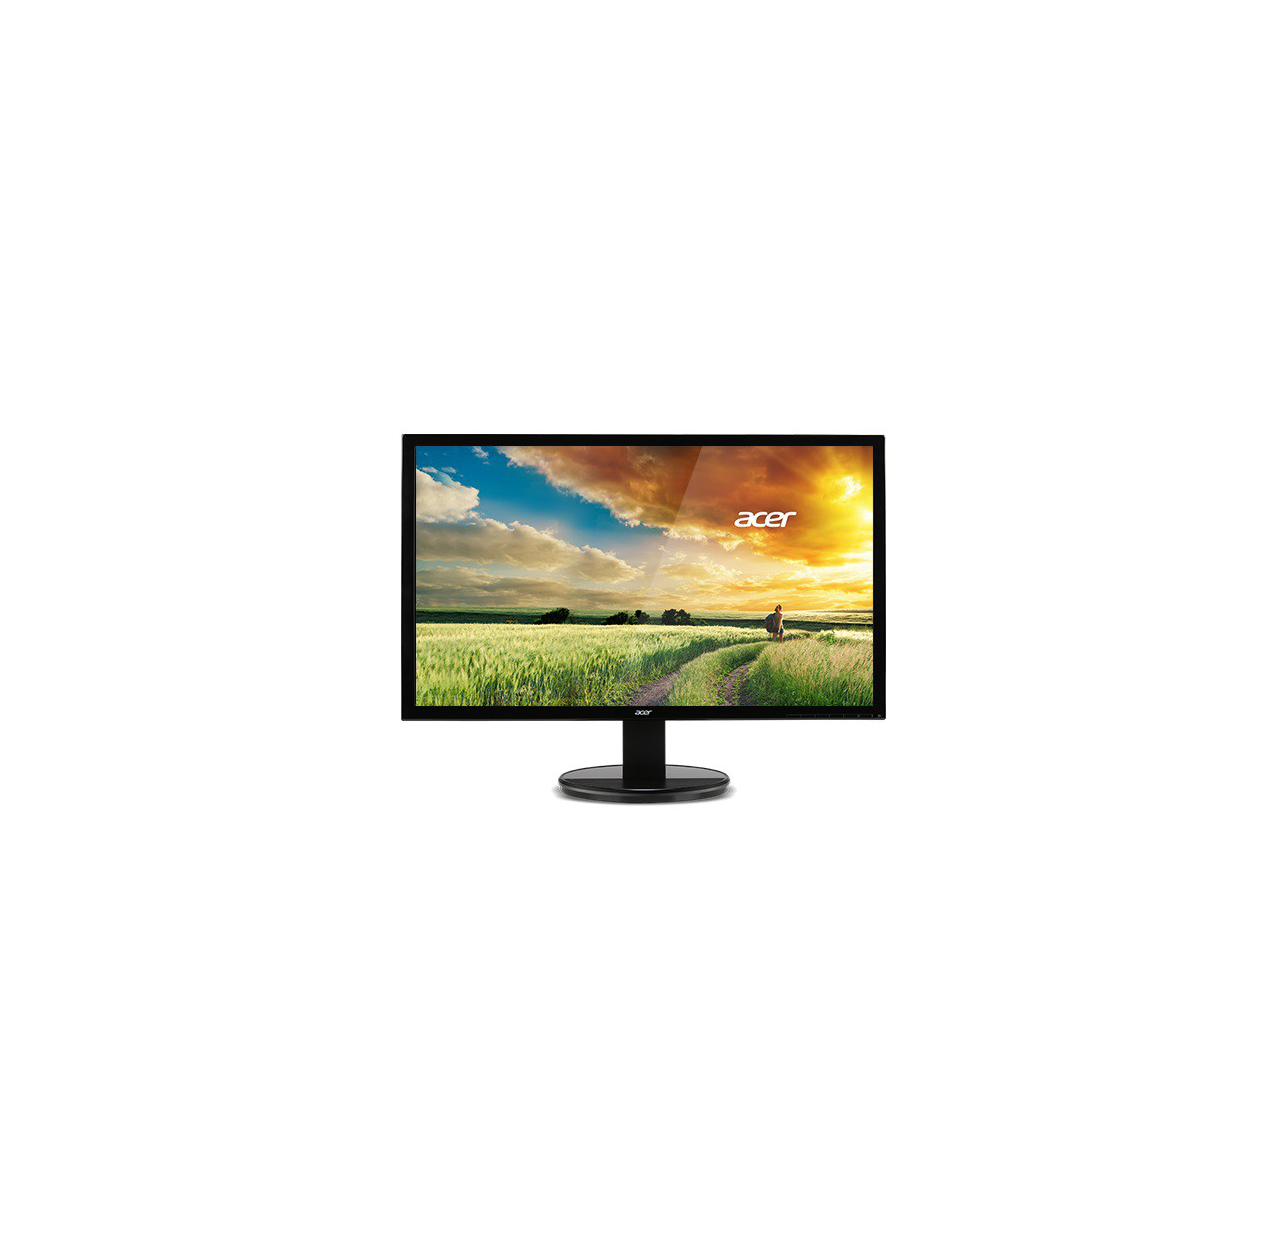 Monitor  Acer 61cm (24'') Wide, 16:9 4 sides borderless IPS LED 6ms 100M:1 ACM 25